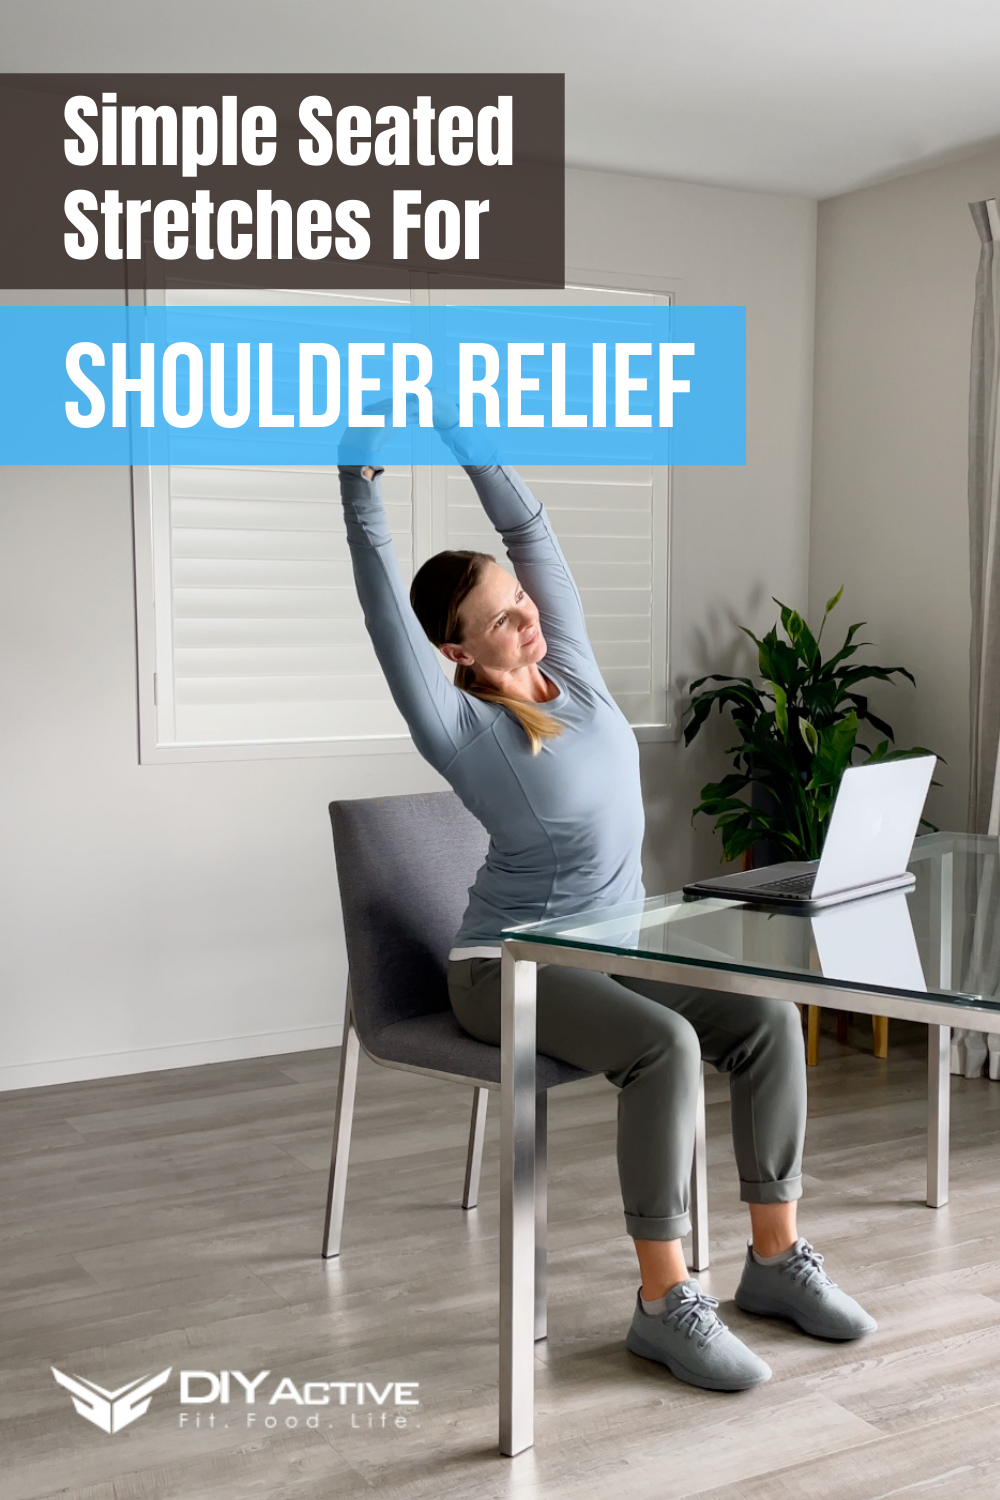 Simple Seated Stretches for Upper Back and Shoulder Relief